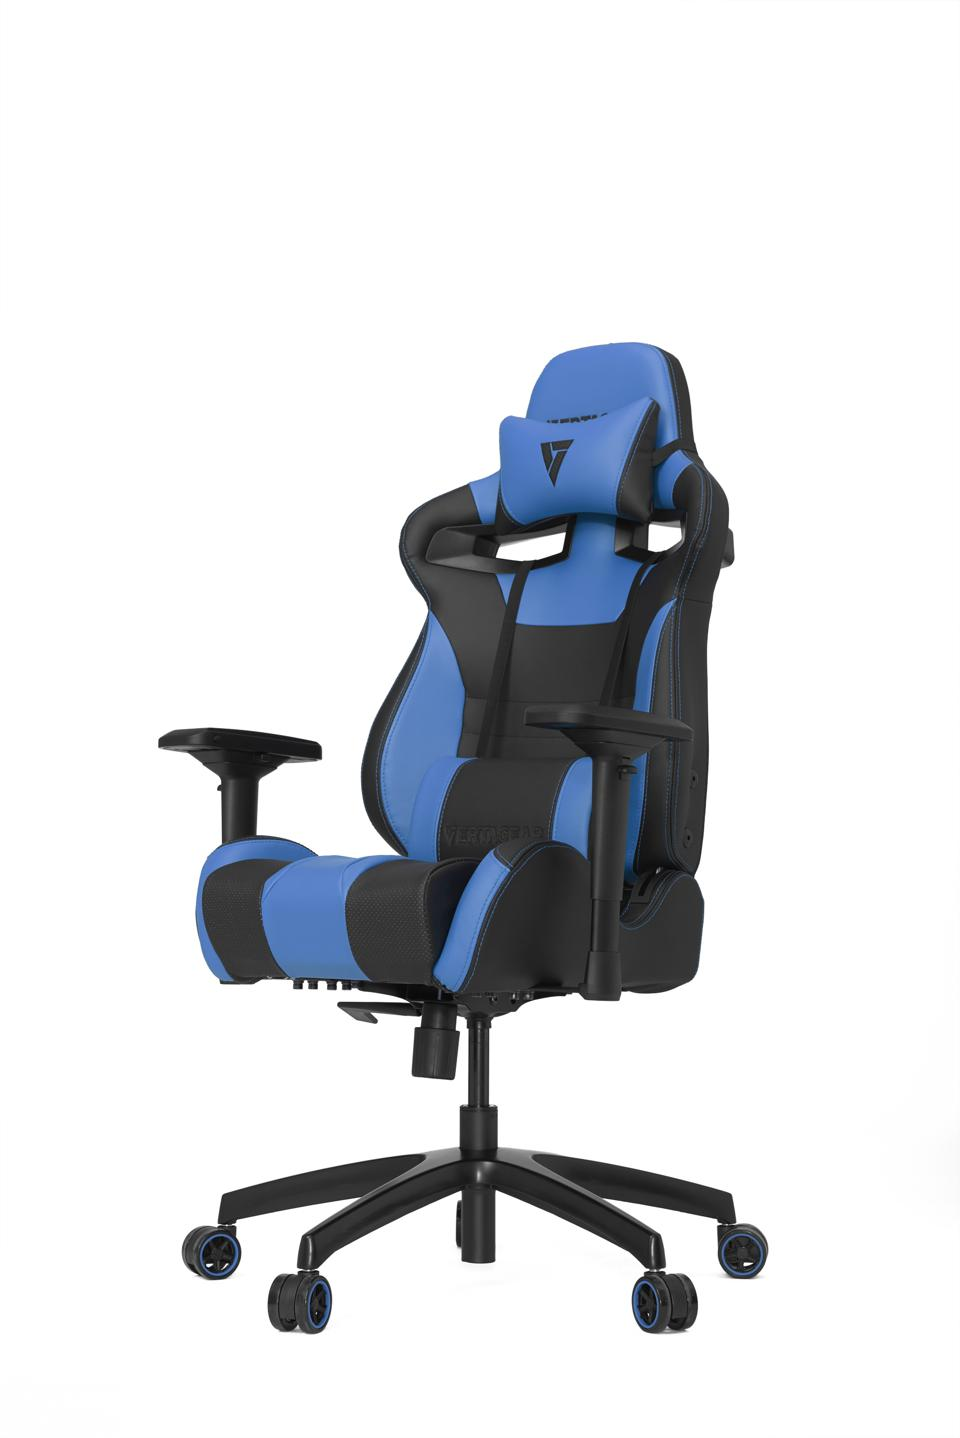 7 Of The Best Gaming Chairs For The Serious Gamer